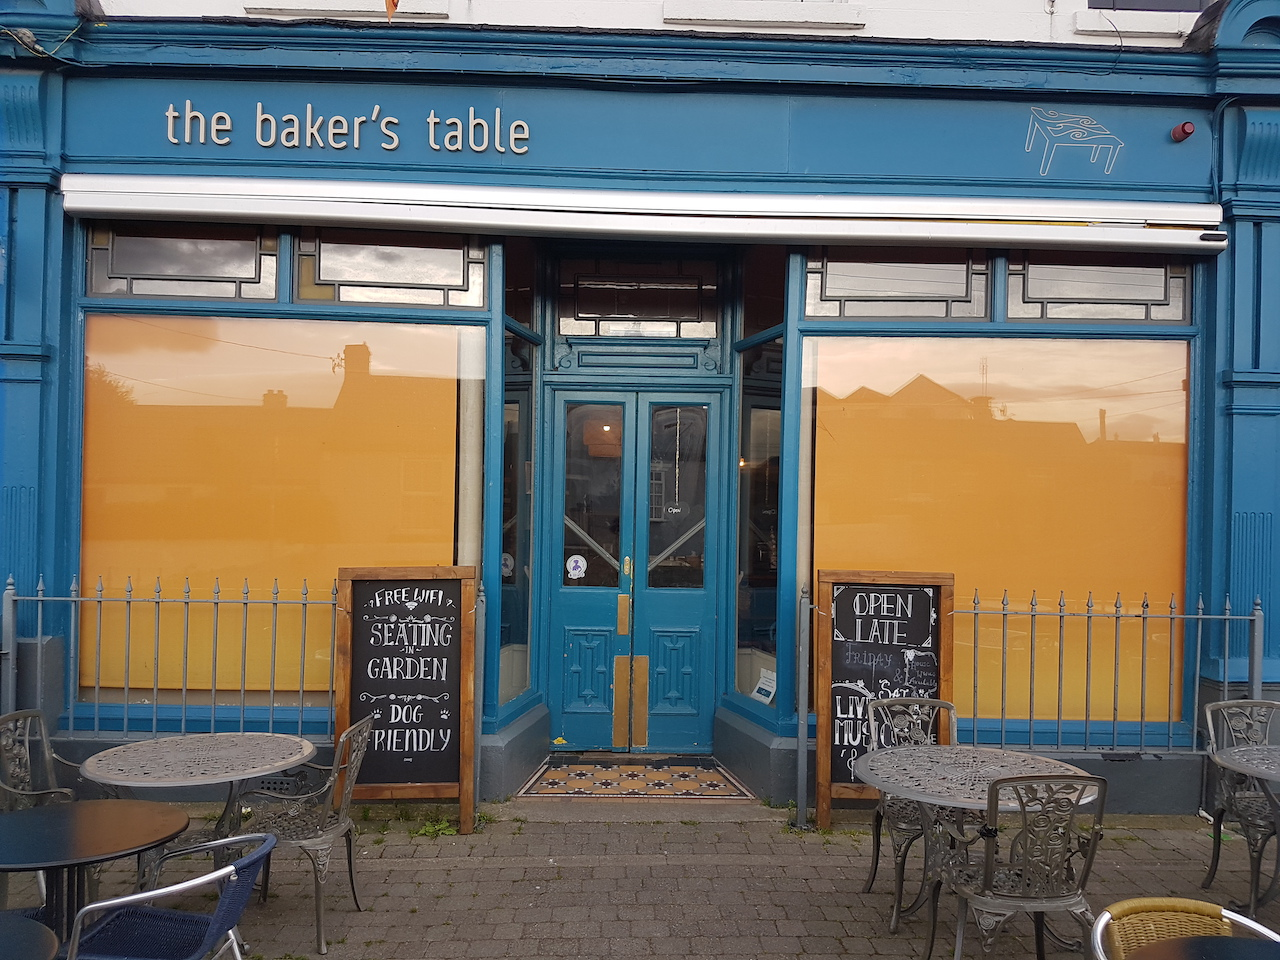 Cafe/Restaurant – Greystones, Co. Wicklow – Lease & Business SALE AGREED